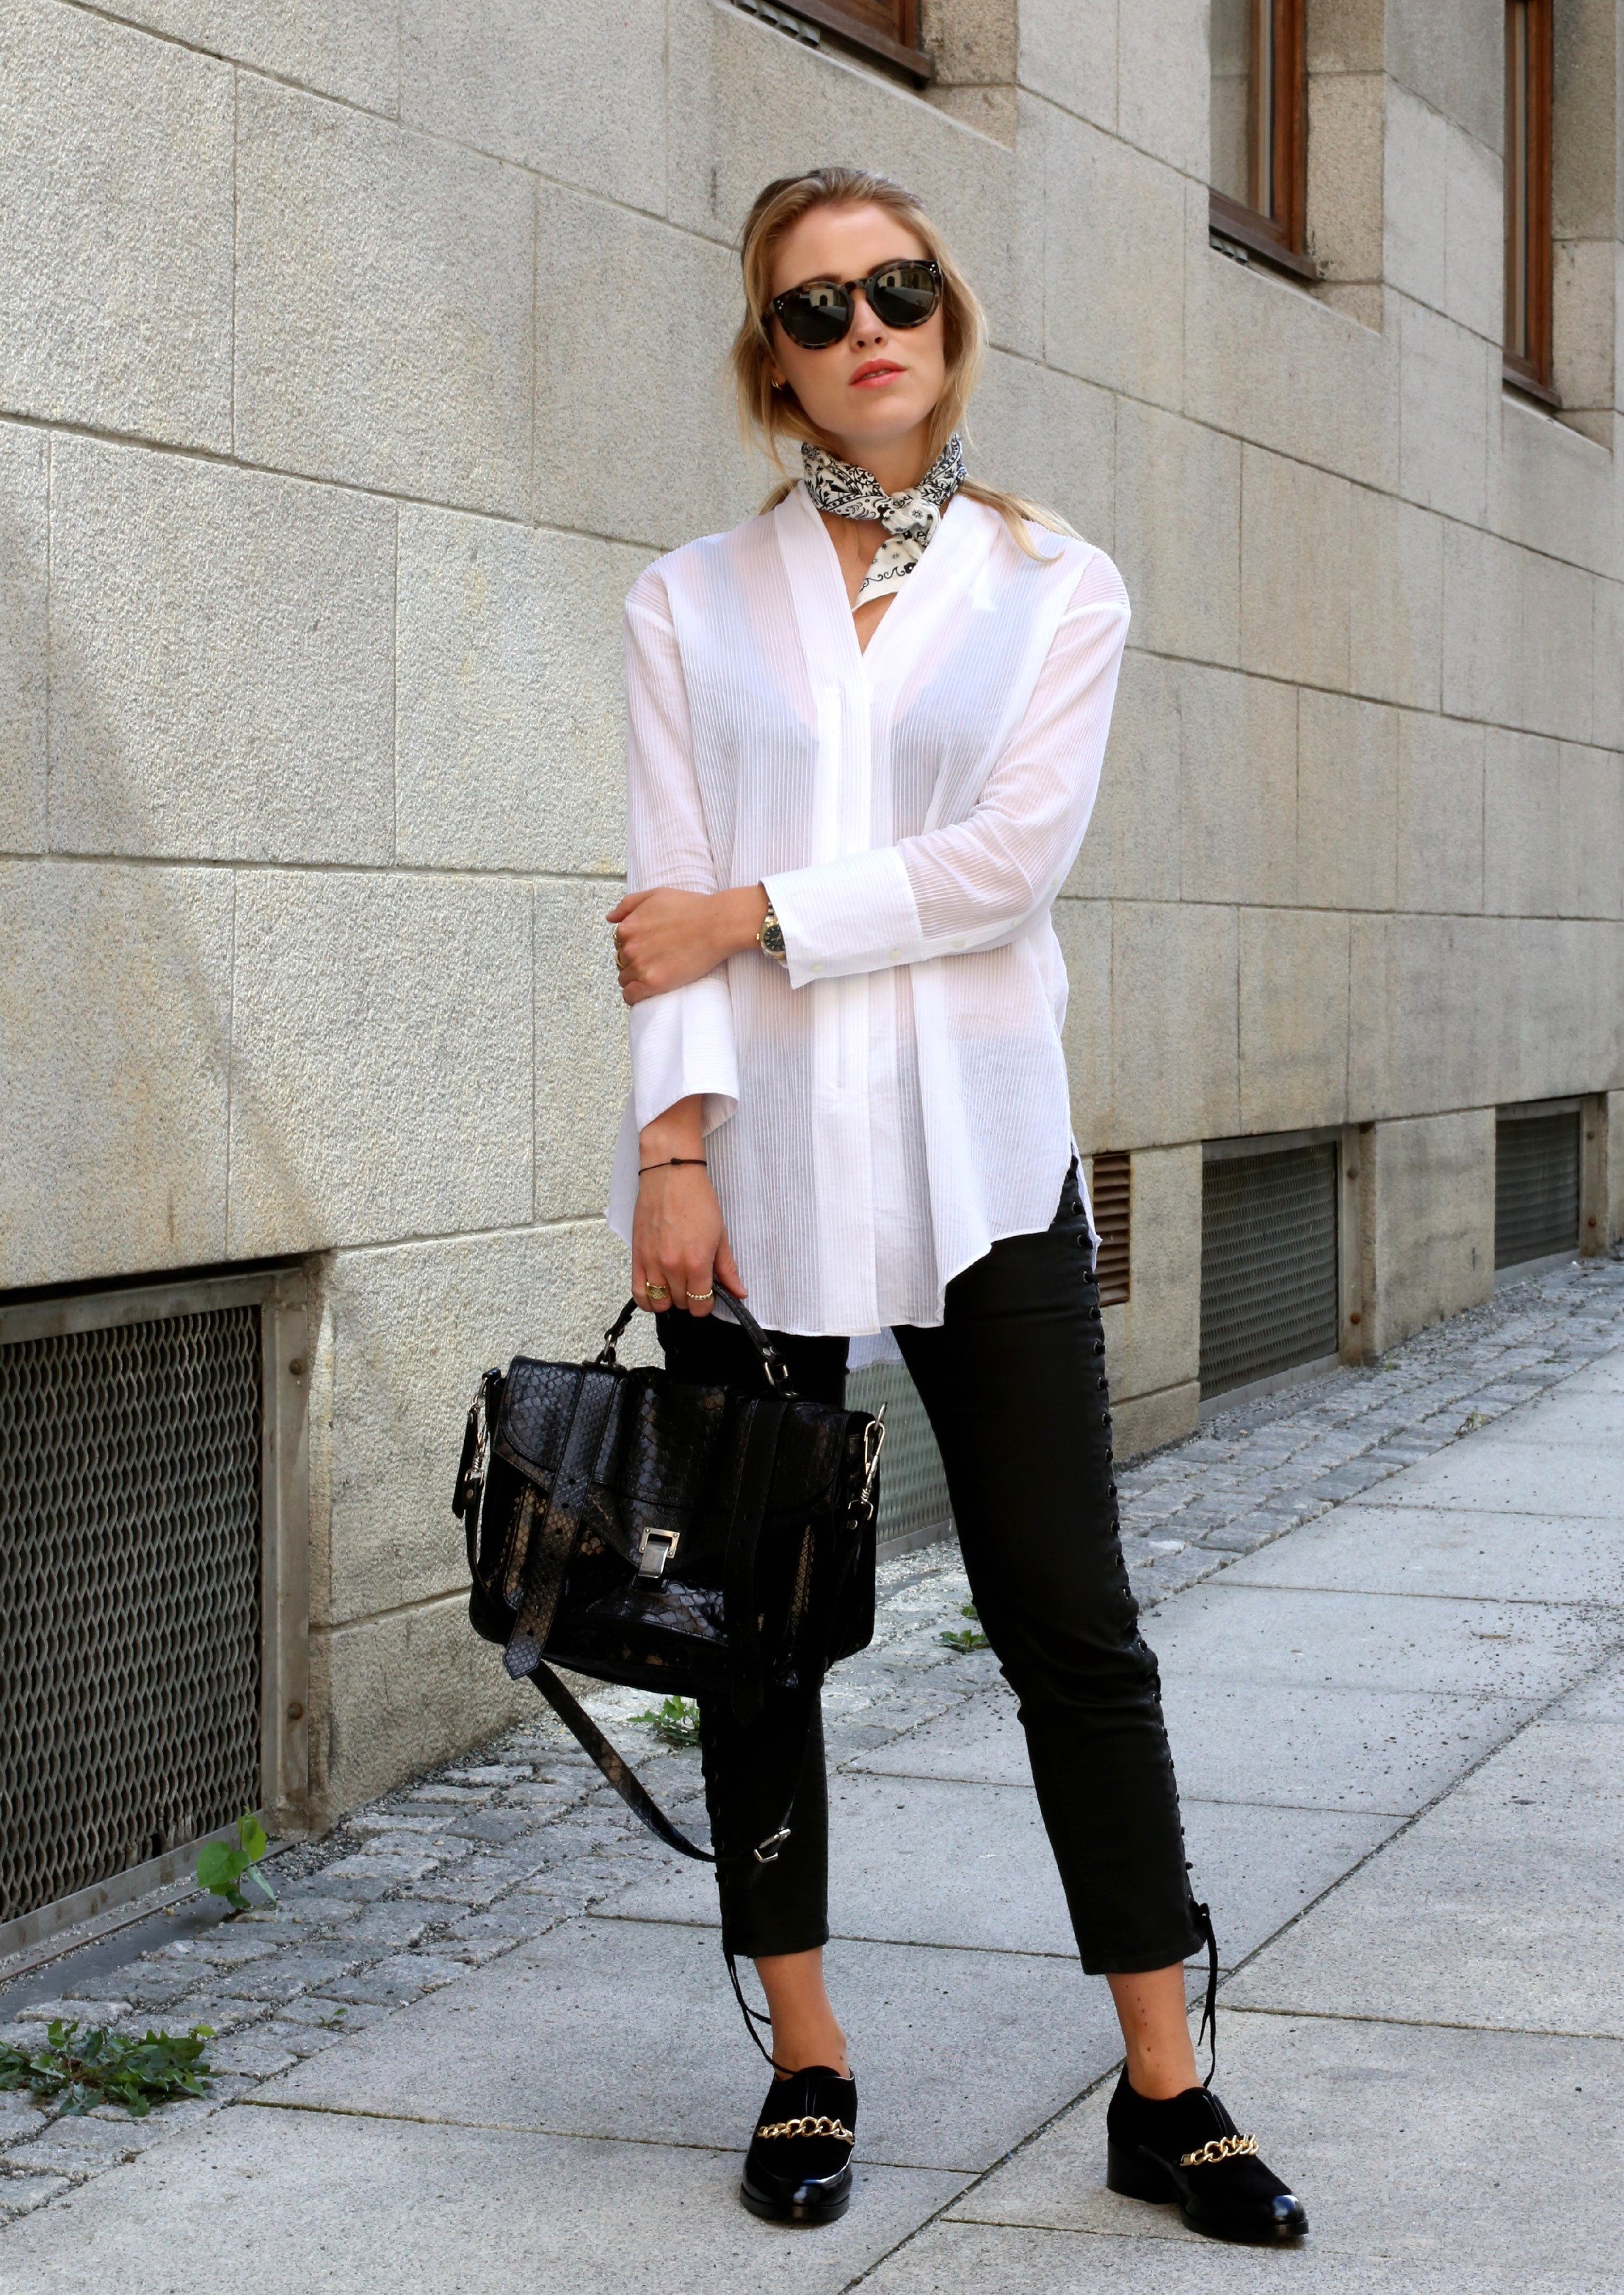 Annabel Rosendahl is wearing a white shirt from Helmut Lang, trousers from Isabel Marant, shoes from 3.1 Philip Lim, bag from Proenza Schouler and sunglasses from Celine